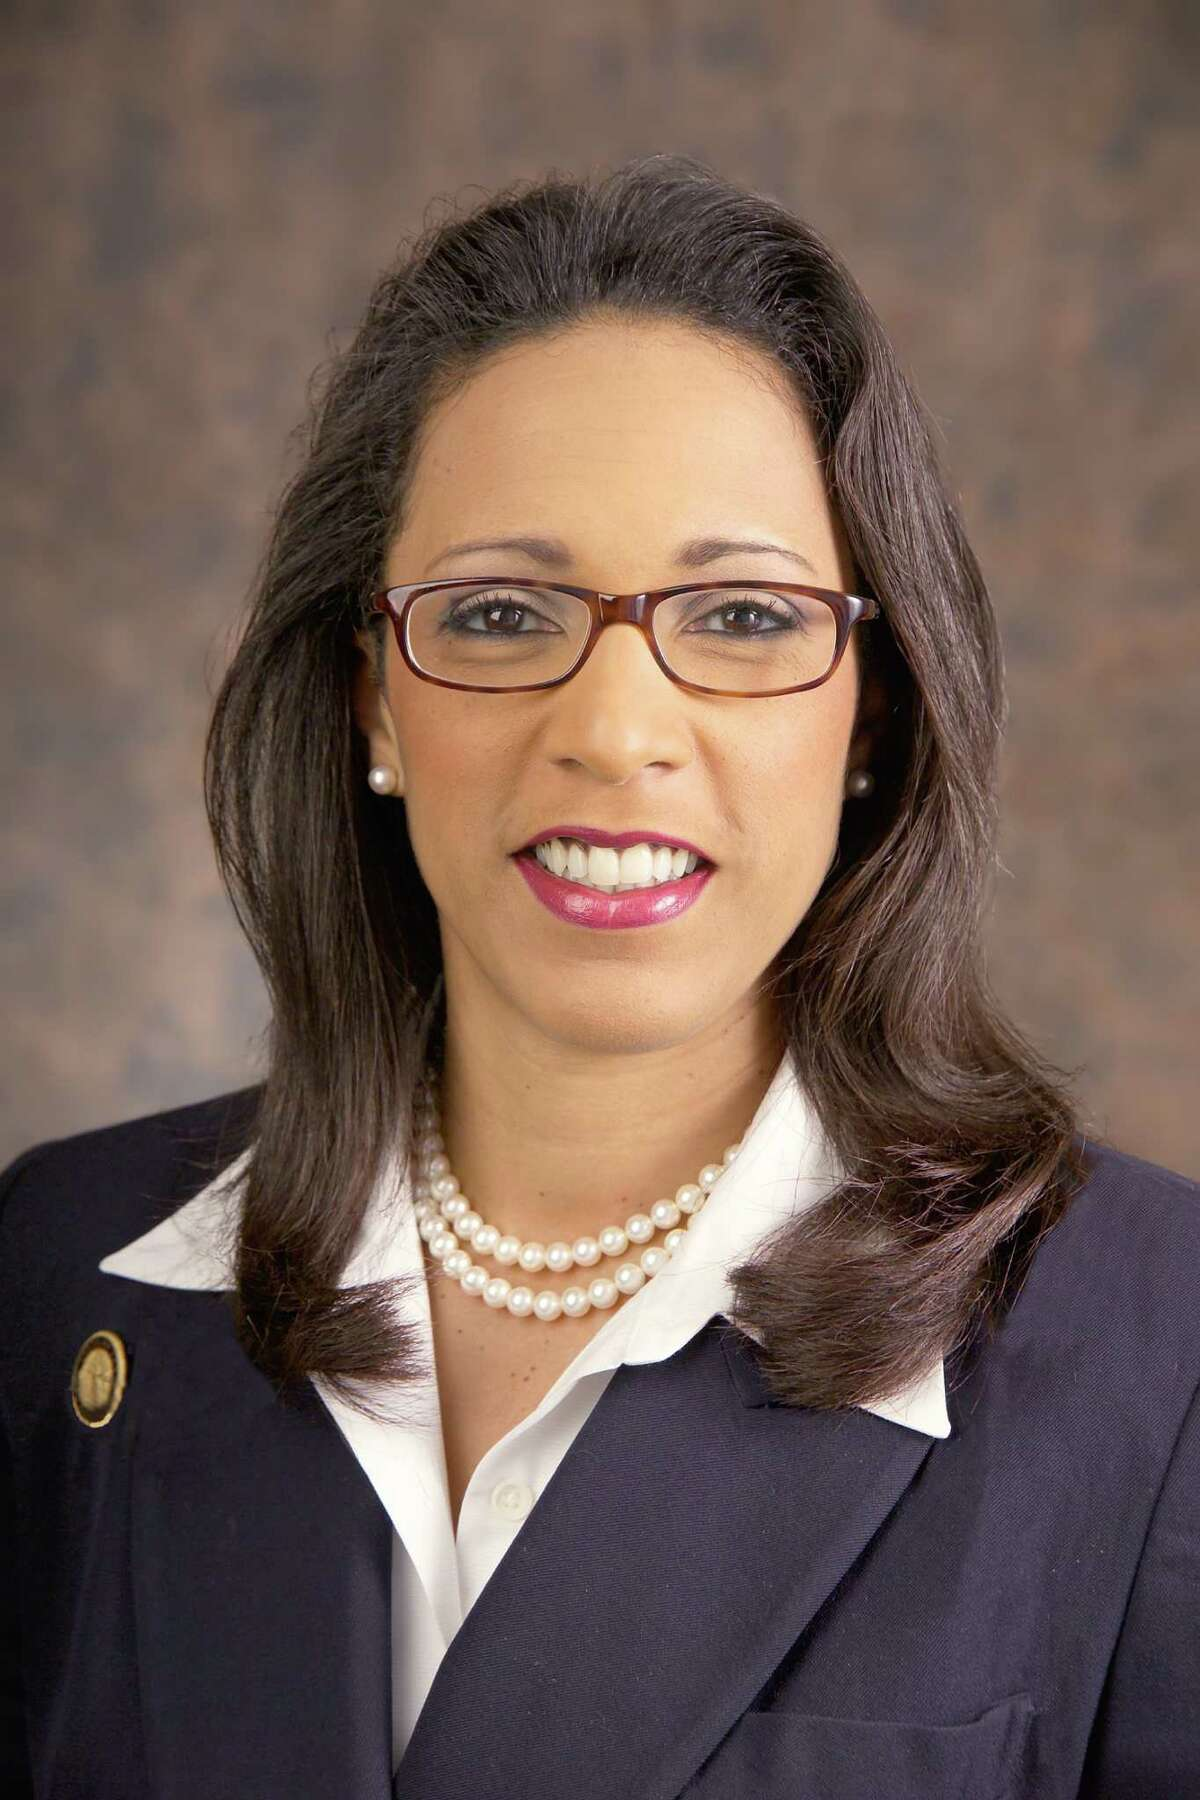 Name: Dawnna Dukes, Texas state representative for District 46, filed a bill related to health benefits coverage for certain persons under the child health plan, medical assistance, and other programs. Byline: Office of State Representative Dawnna Dukes